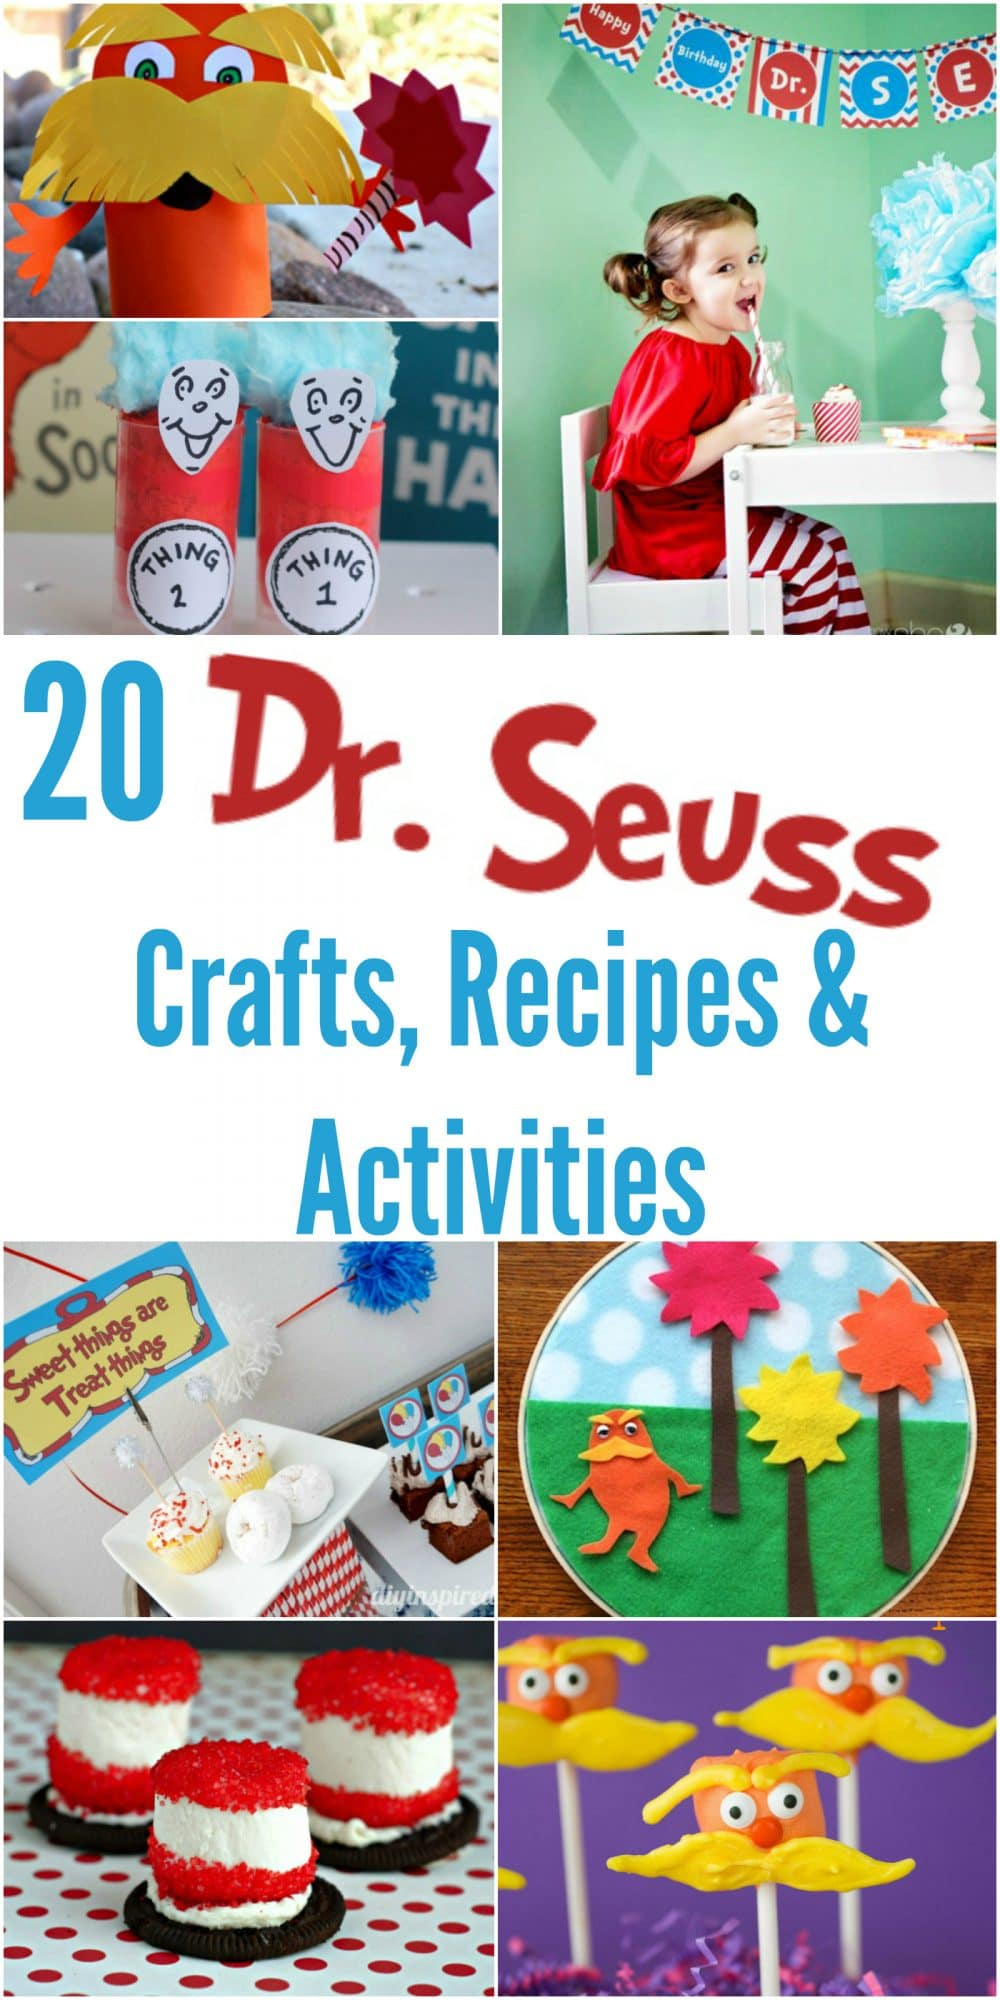 20 Dr. Seuss Crafts, Recipes & Activities